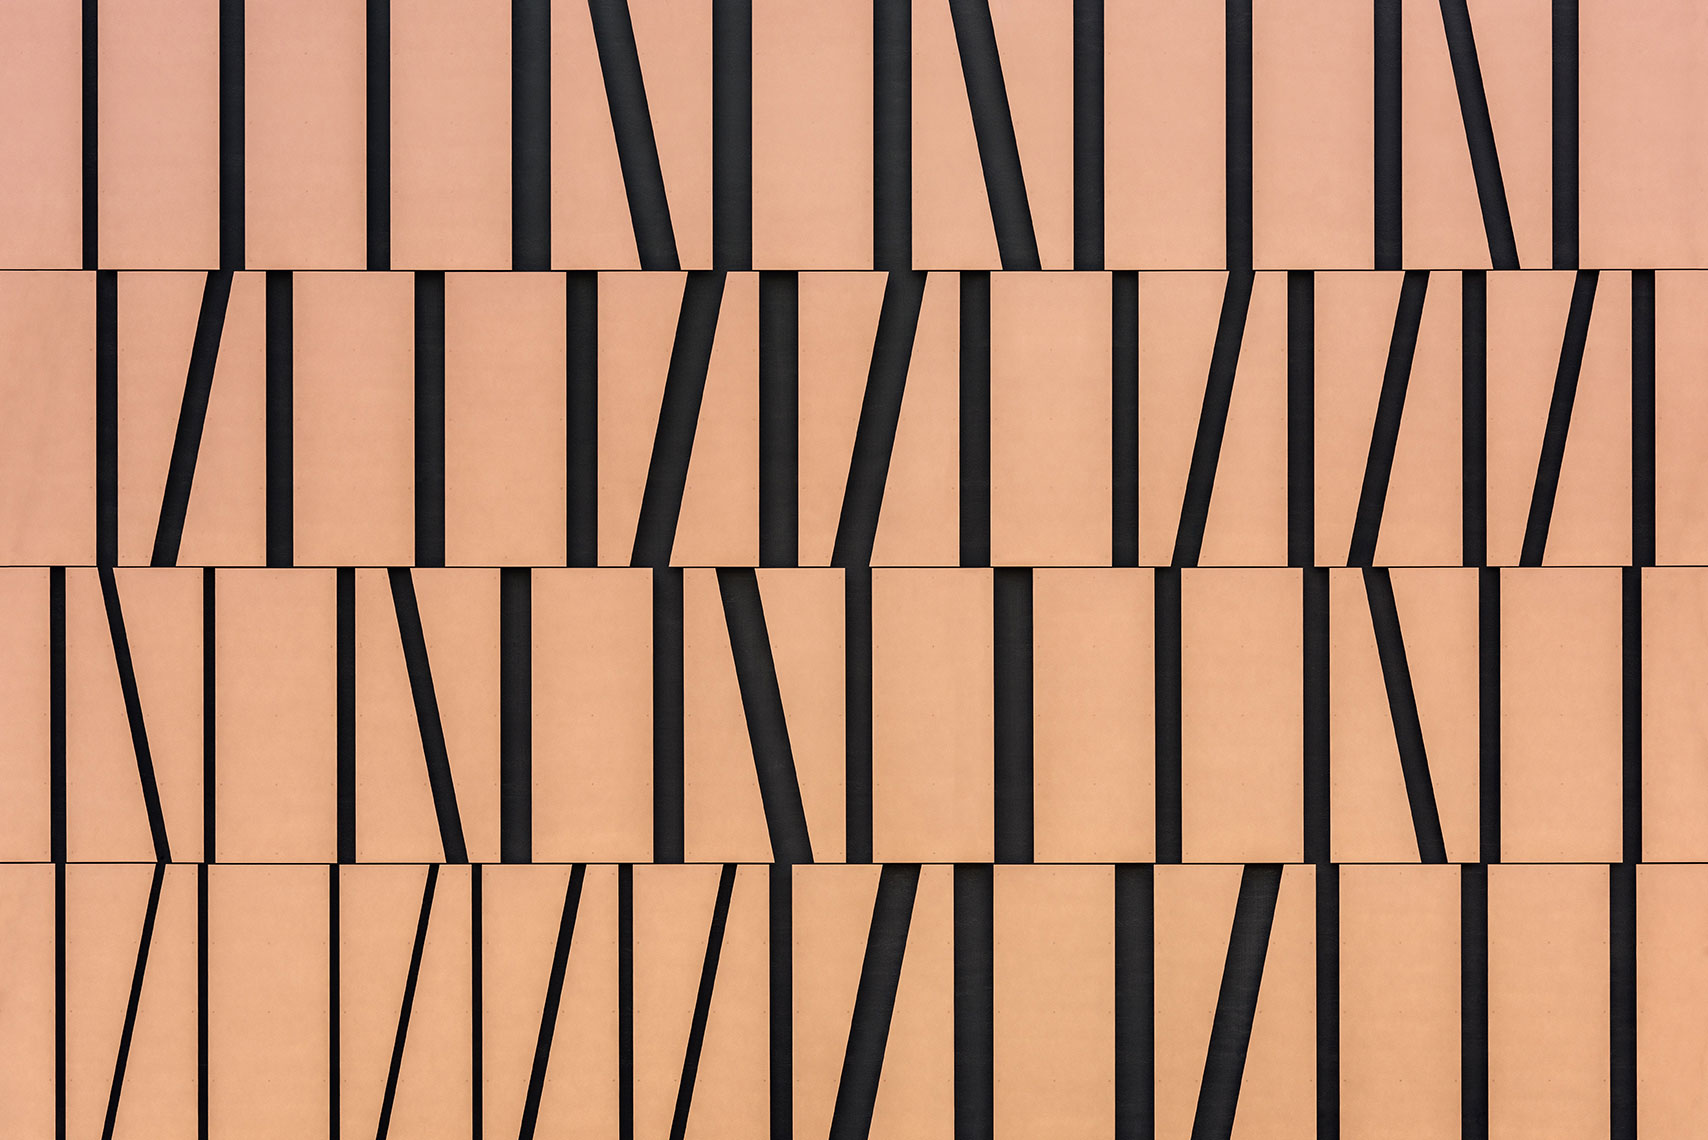 Wallis Annenberg Center for the Performing Arts Architecture Abstract Facade LA